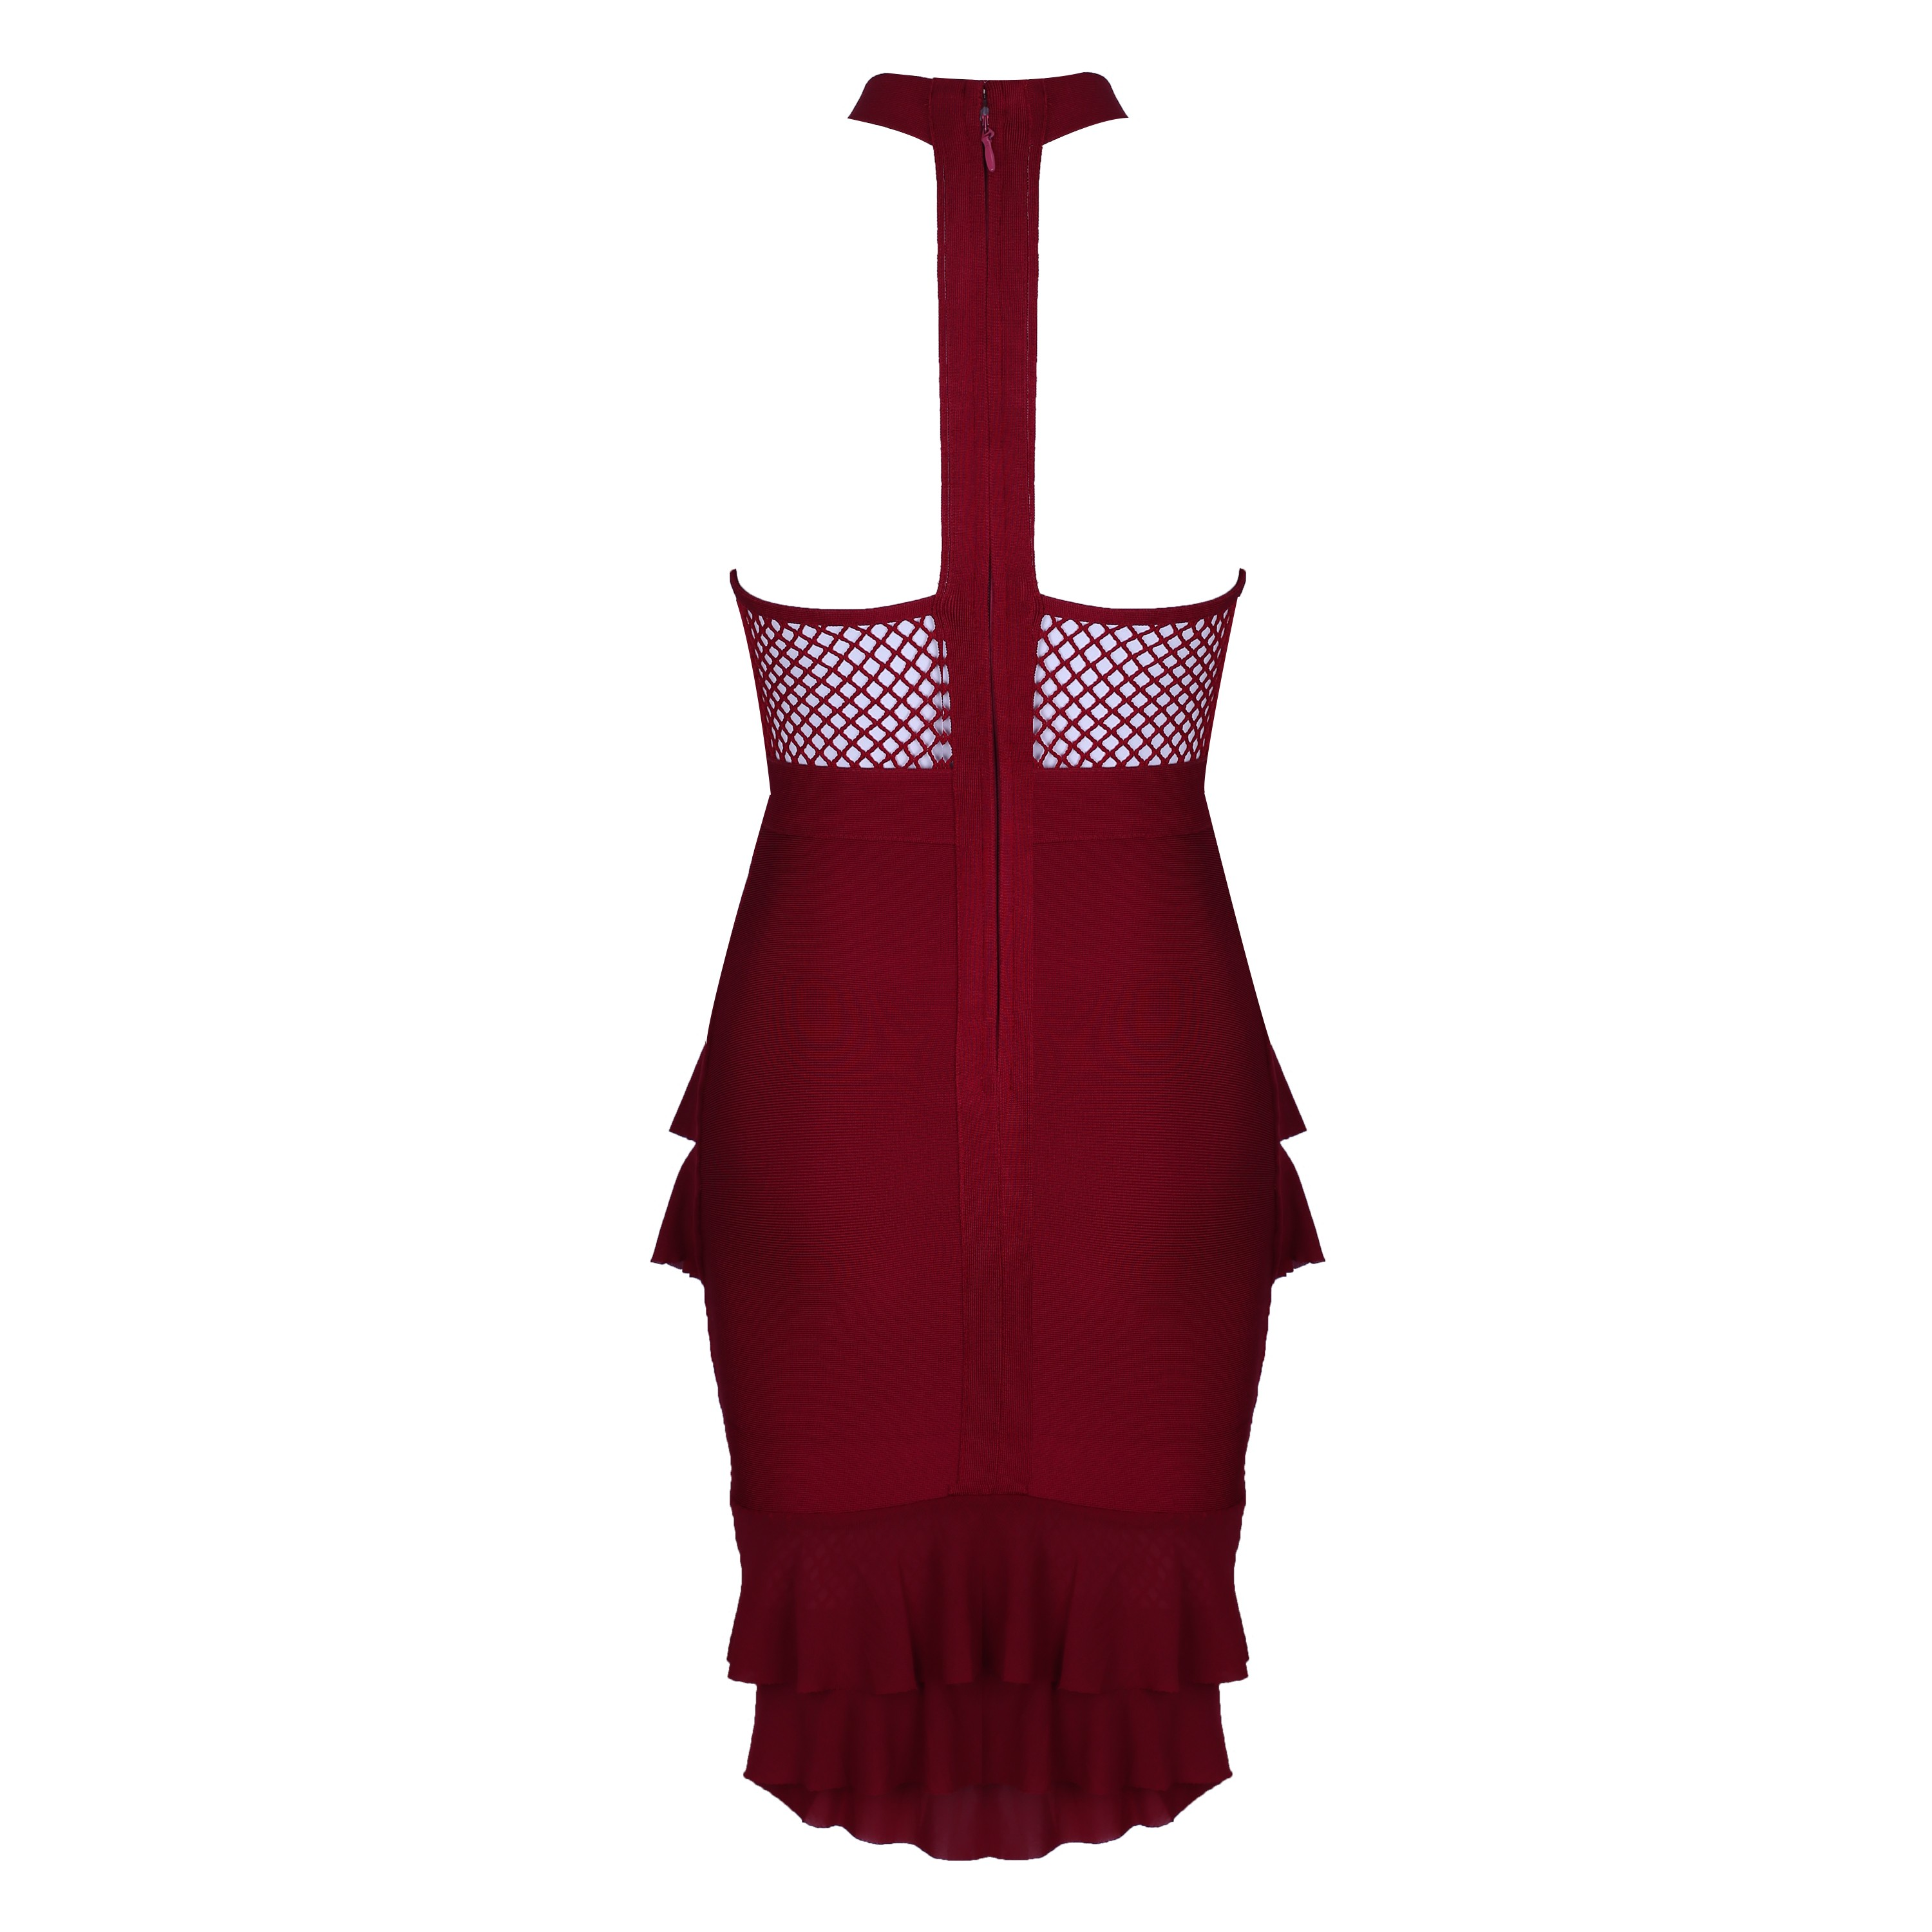 Wine Halter Sleeveless Over Knee Ruffles Fashion Bandage Dress HI923-Wine